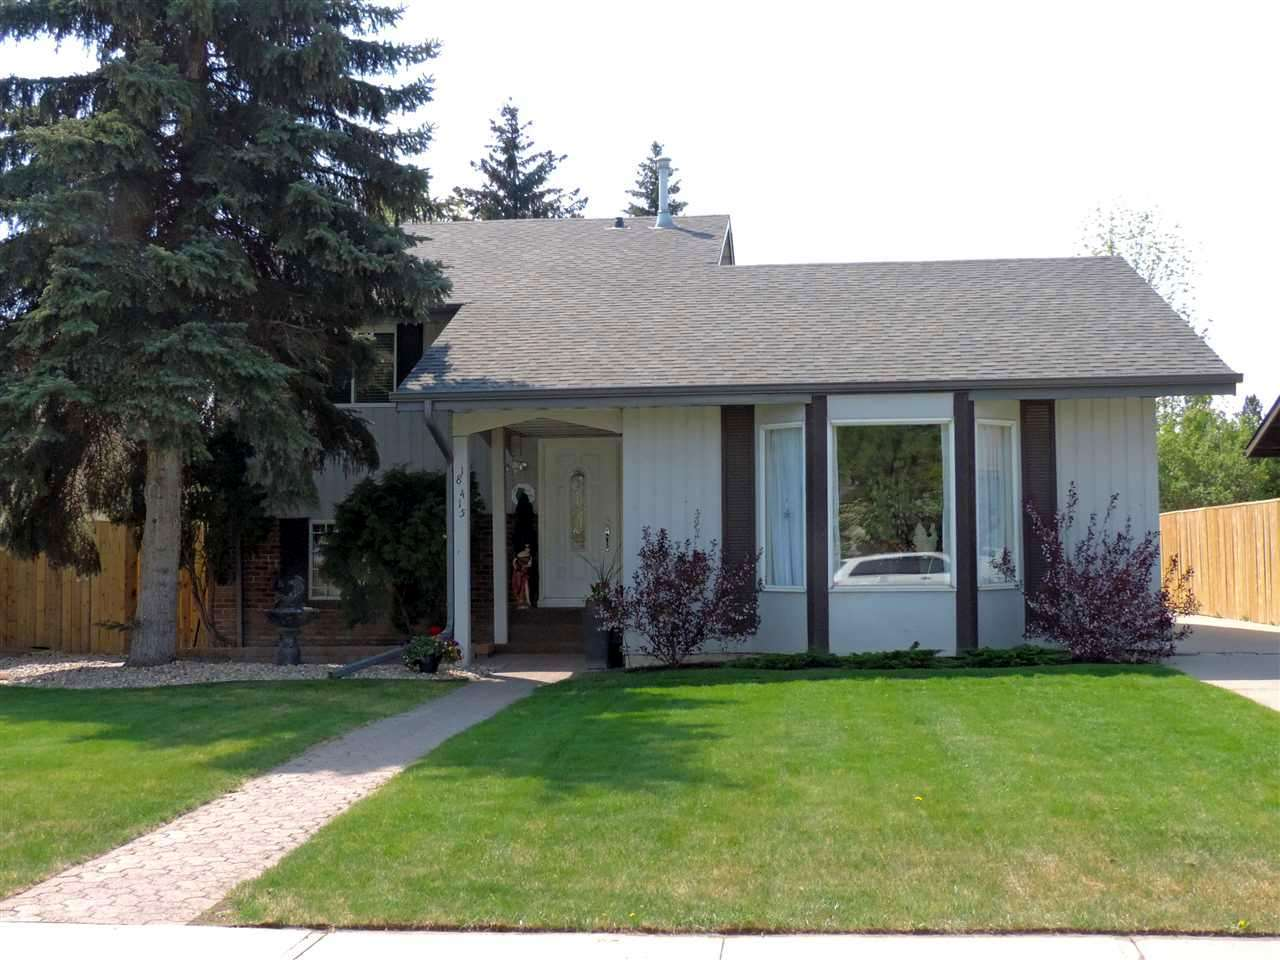 Main Photo: 18415 82 AV NW in Edmonton: Zone 20 House for sale : MLS(r) # E4020994